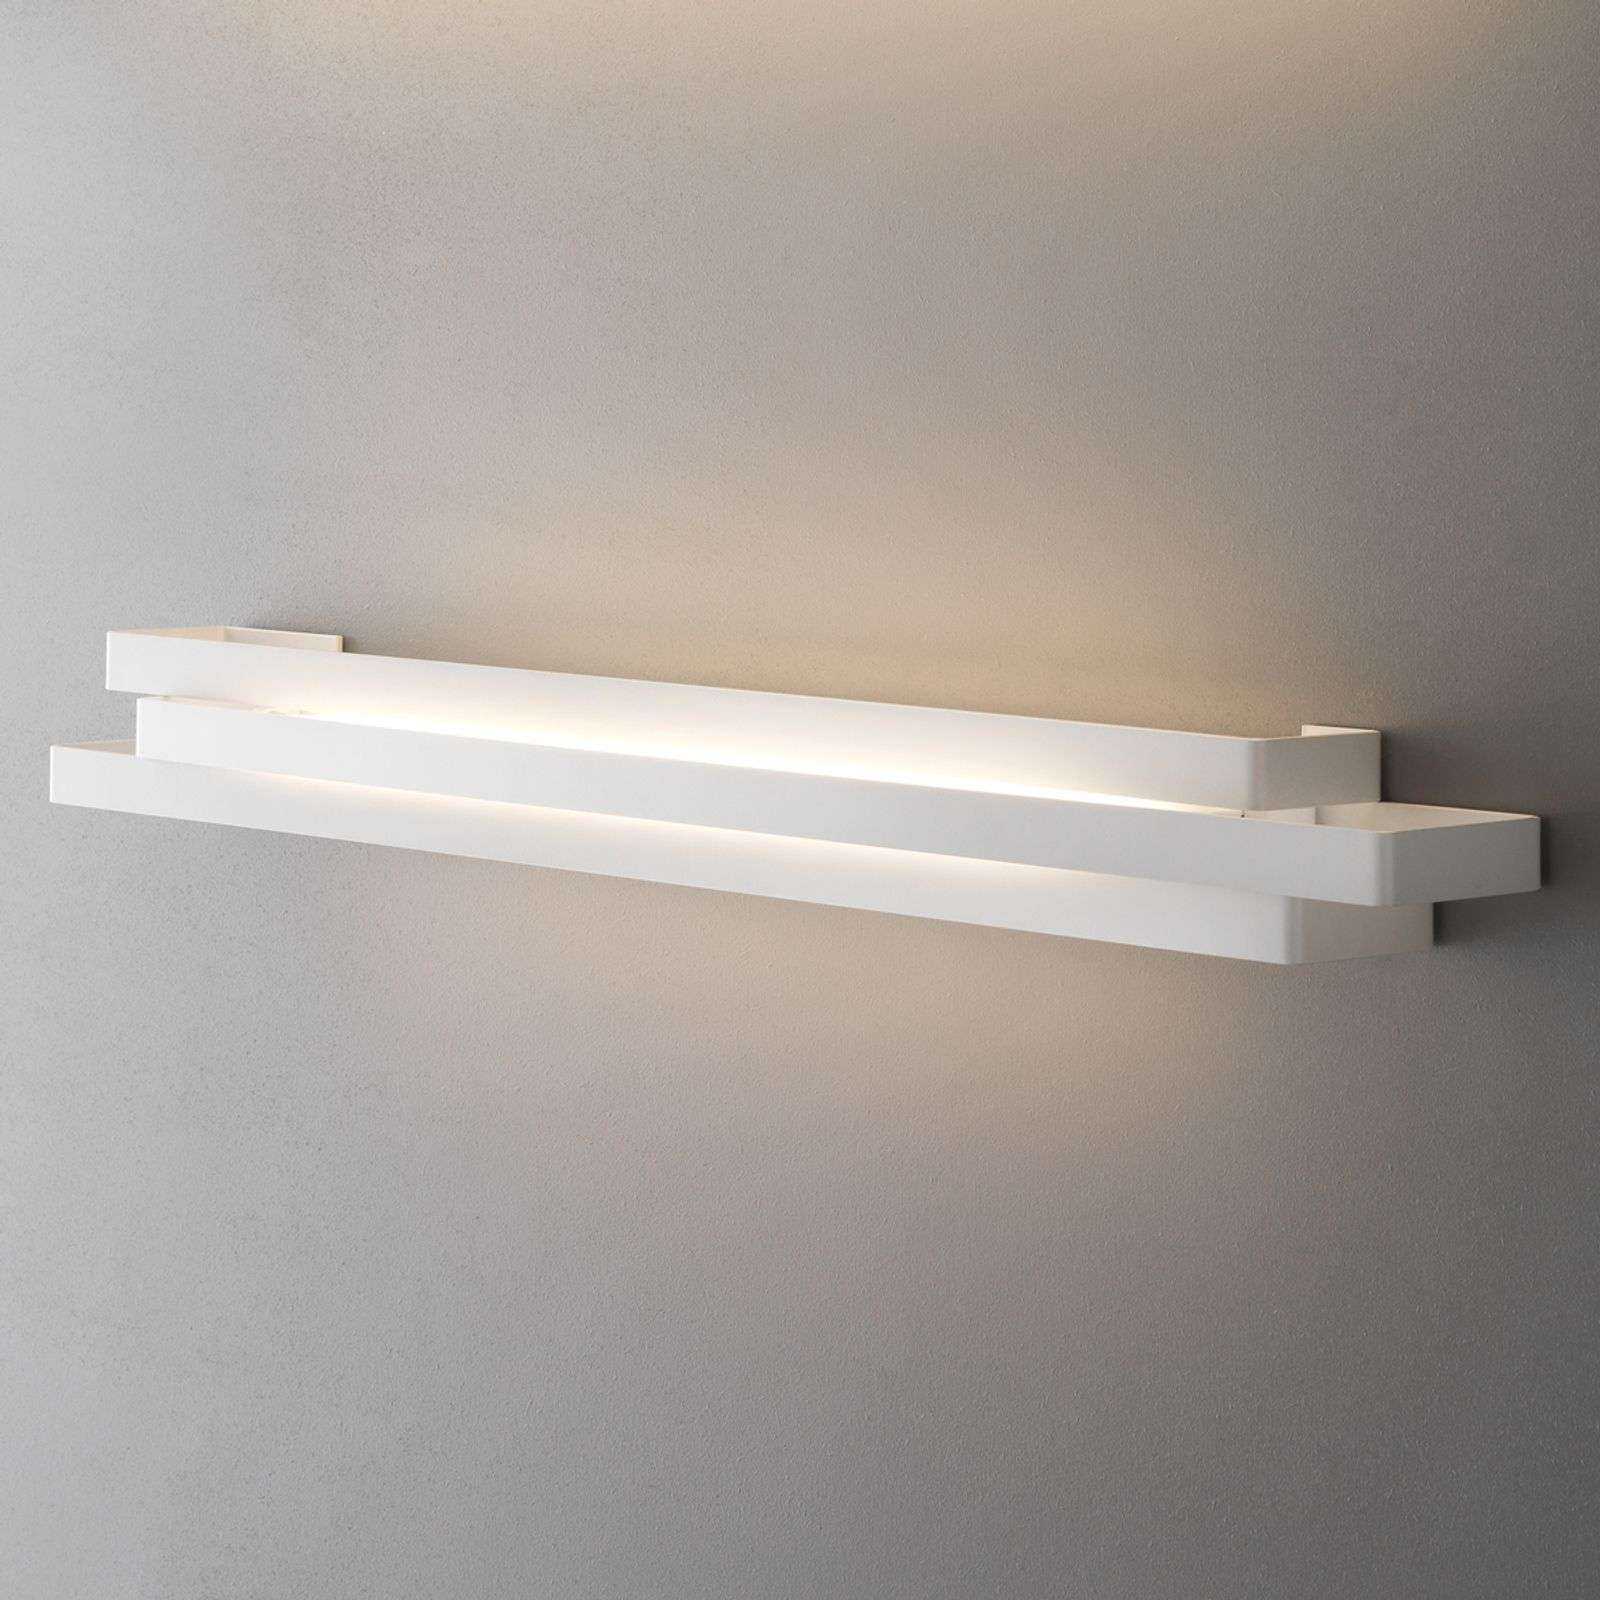 Applique a LED di design Escape, 80 cm